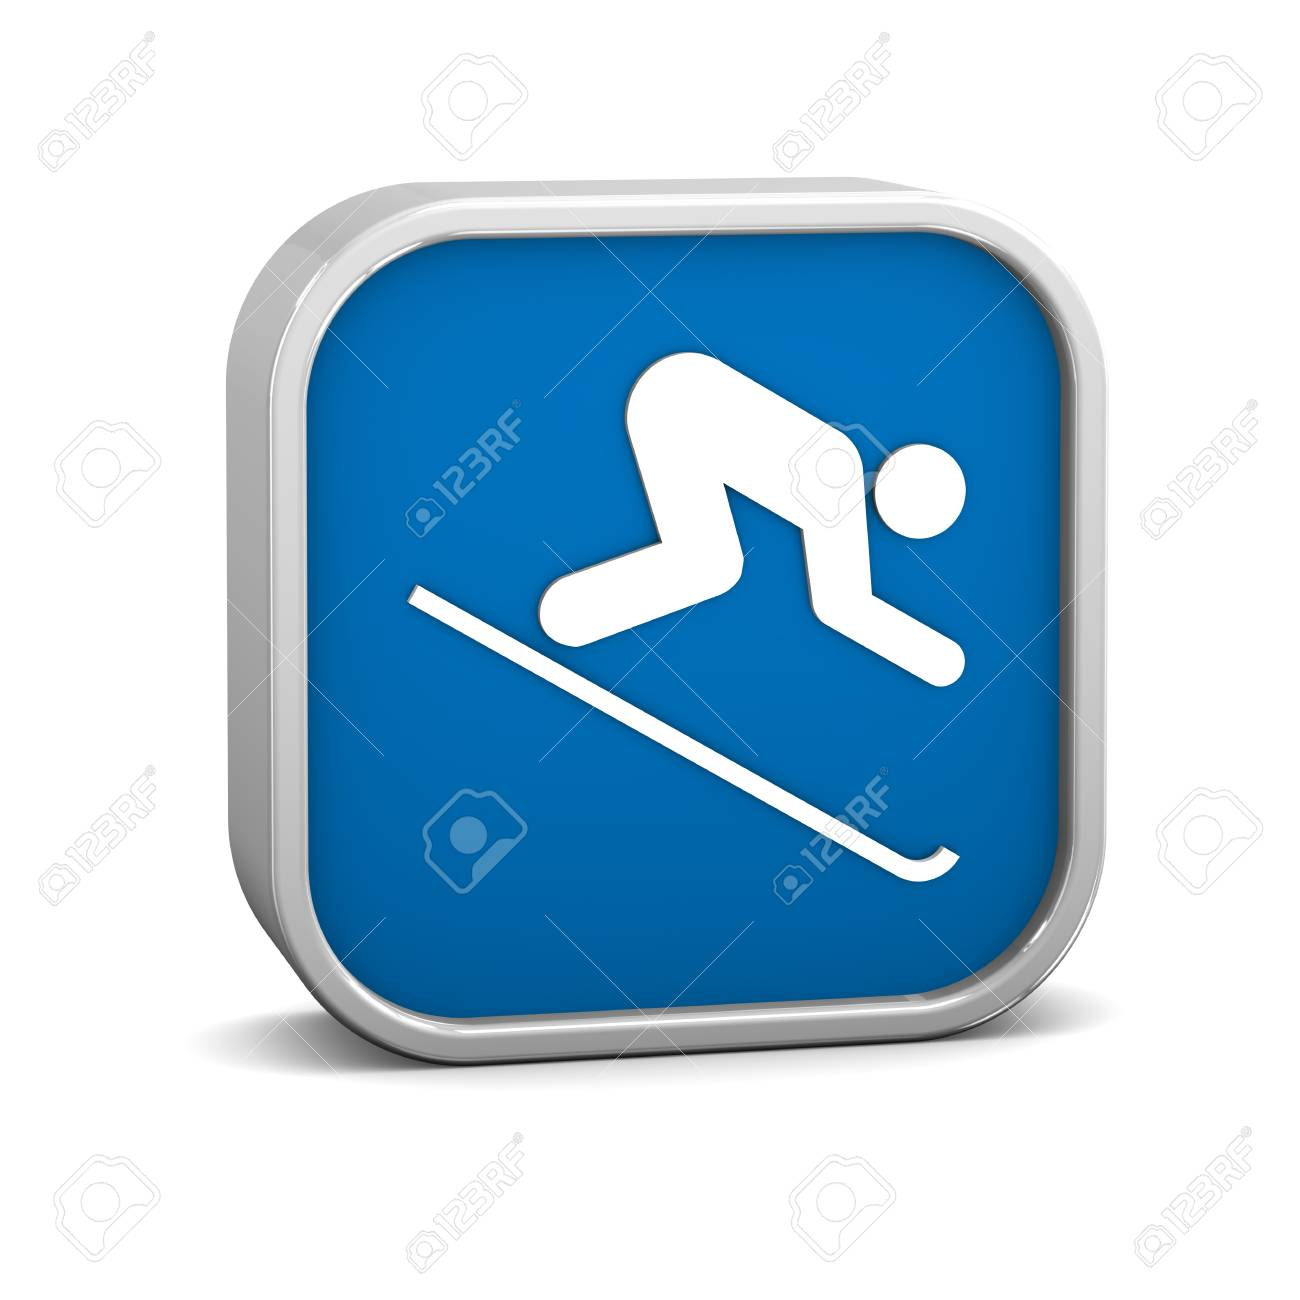 Downhill skiing sign on a white background  Part of a series Stock Photo - 13245251